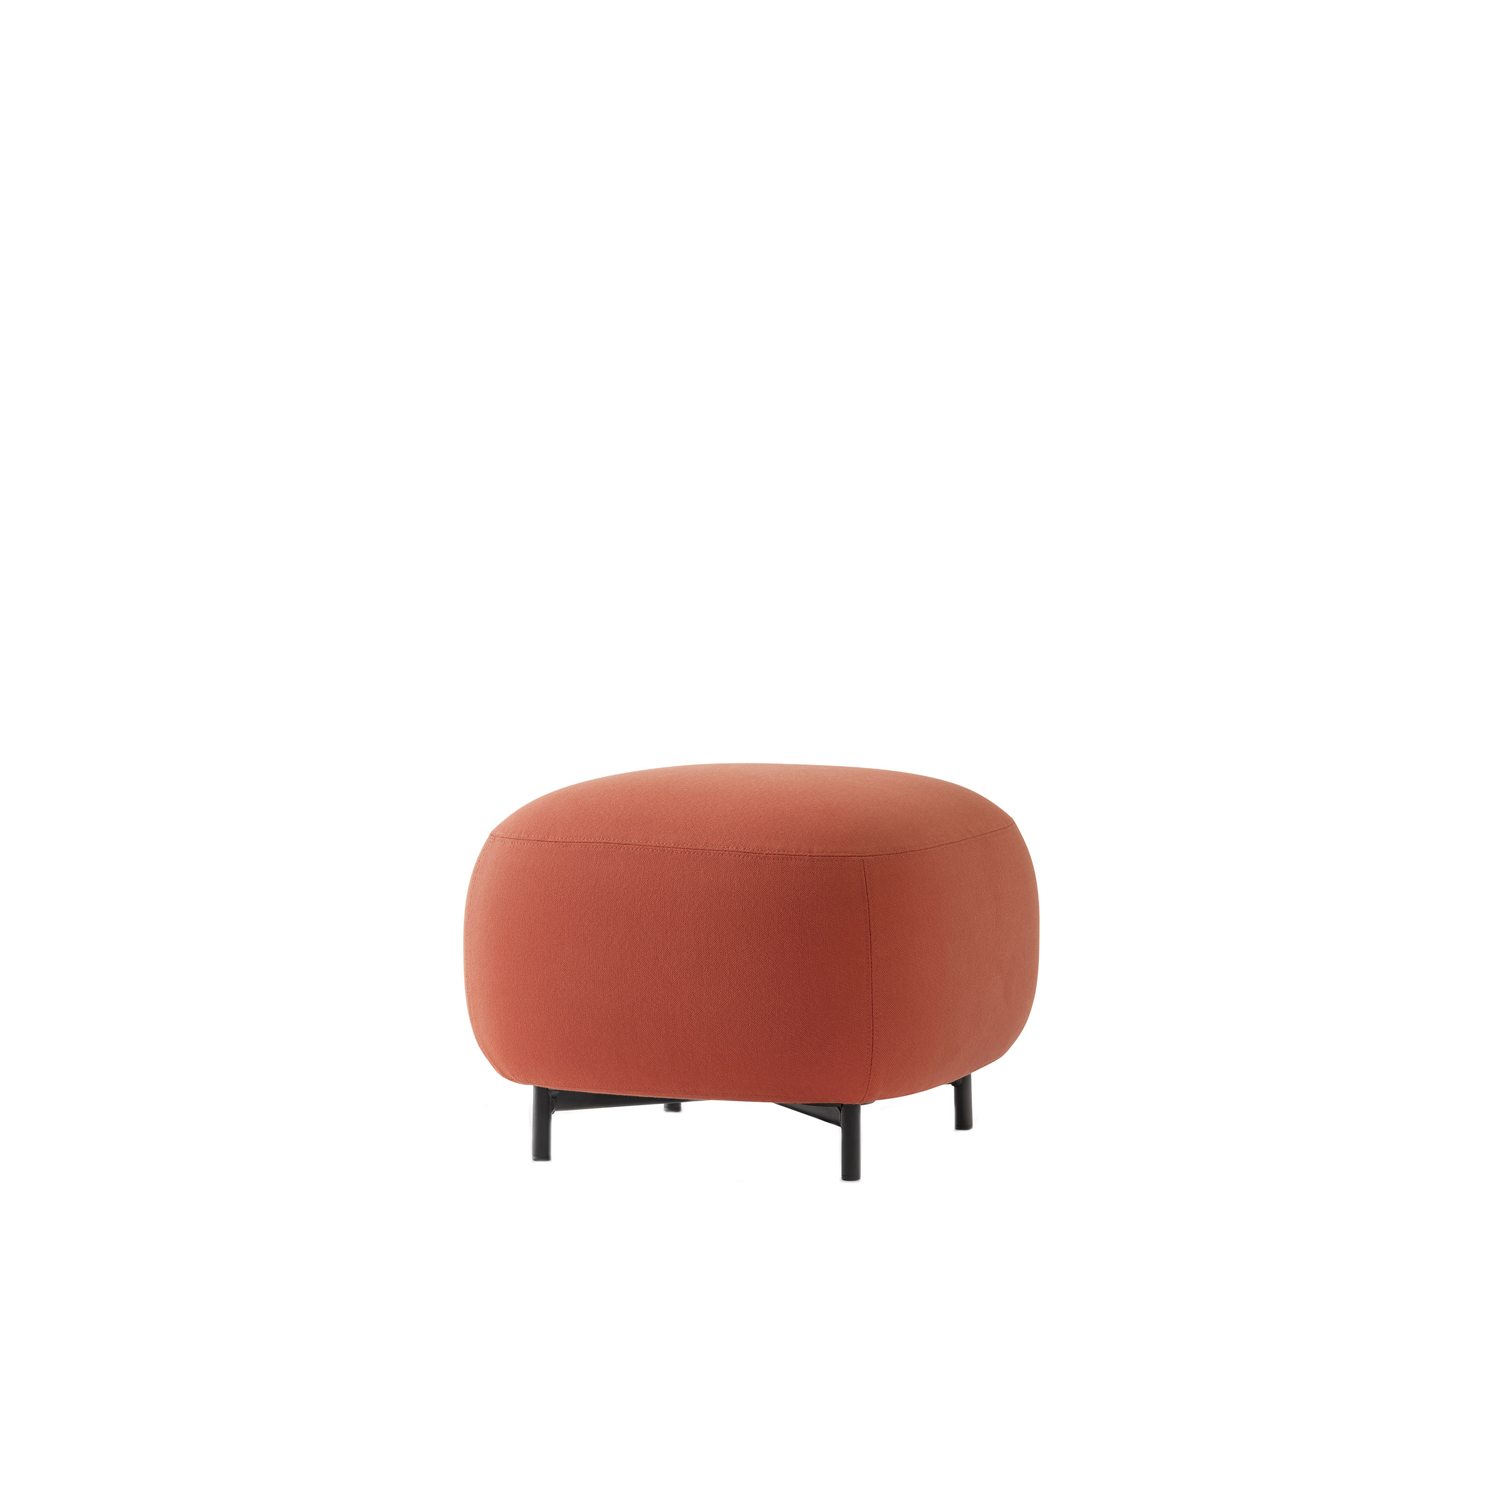 Buddy Pouf - Soft lines and clean design feature Buddy collection. The rounded shape of the pouf with a generous and comfortable upholstery is supported by four thin and rigorous legs Ø20mm. These make the pouf extremely functional and visually lift the volume from the ground. Height 400 - 450 mm.